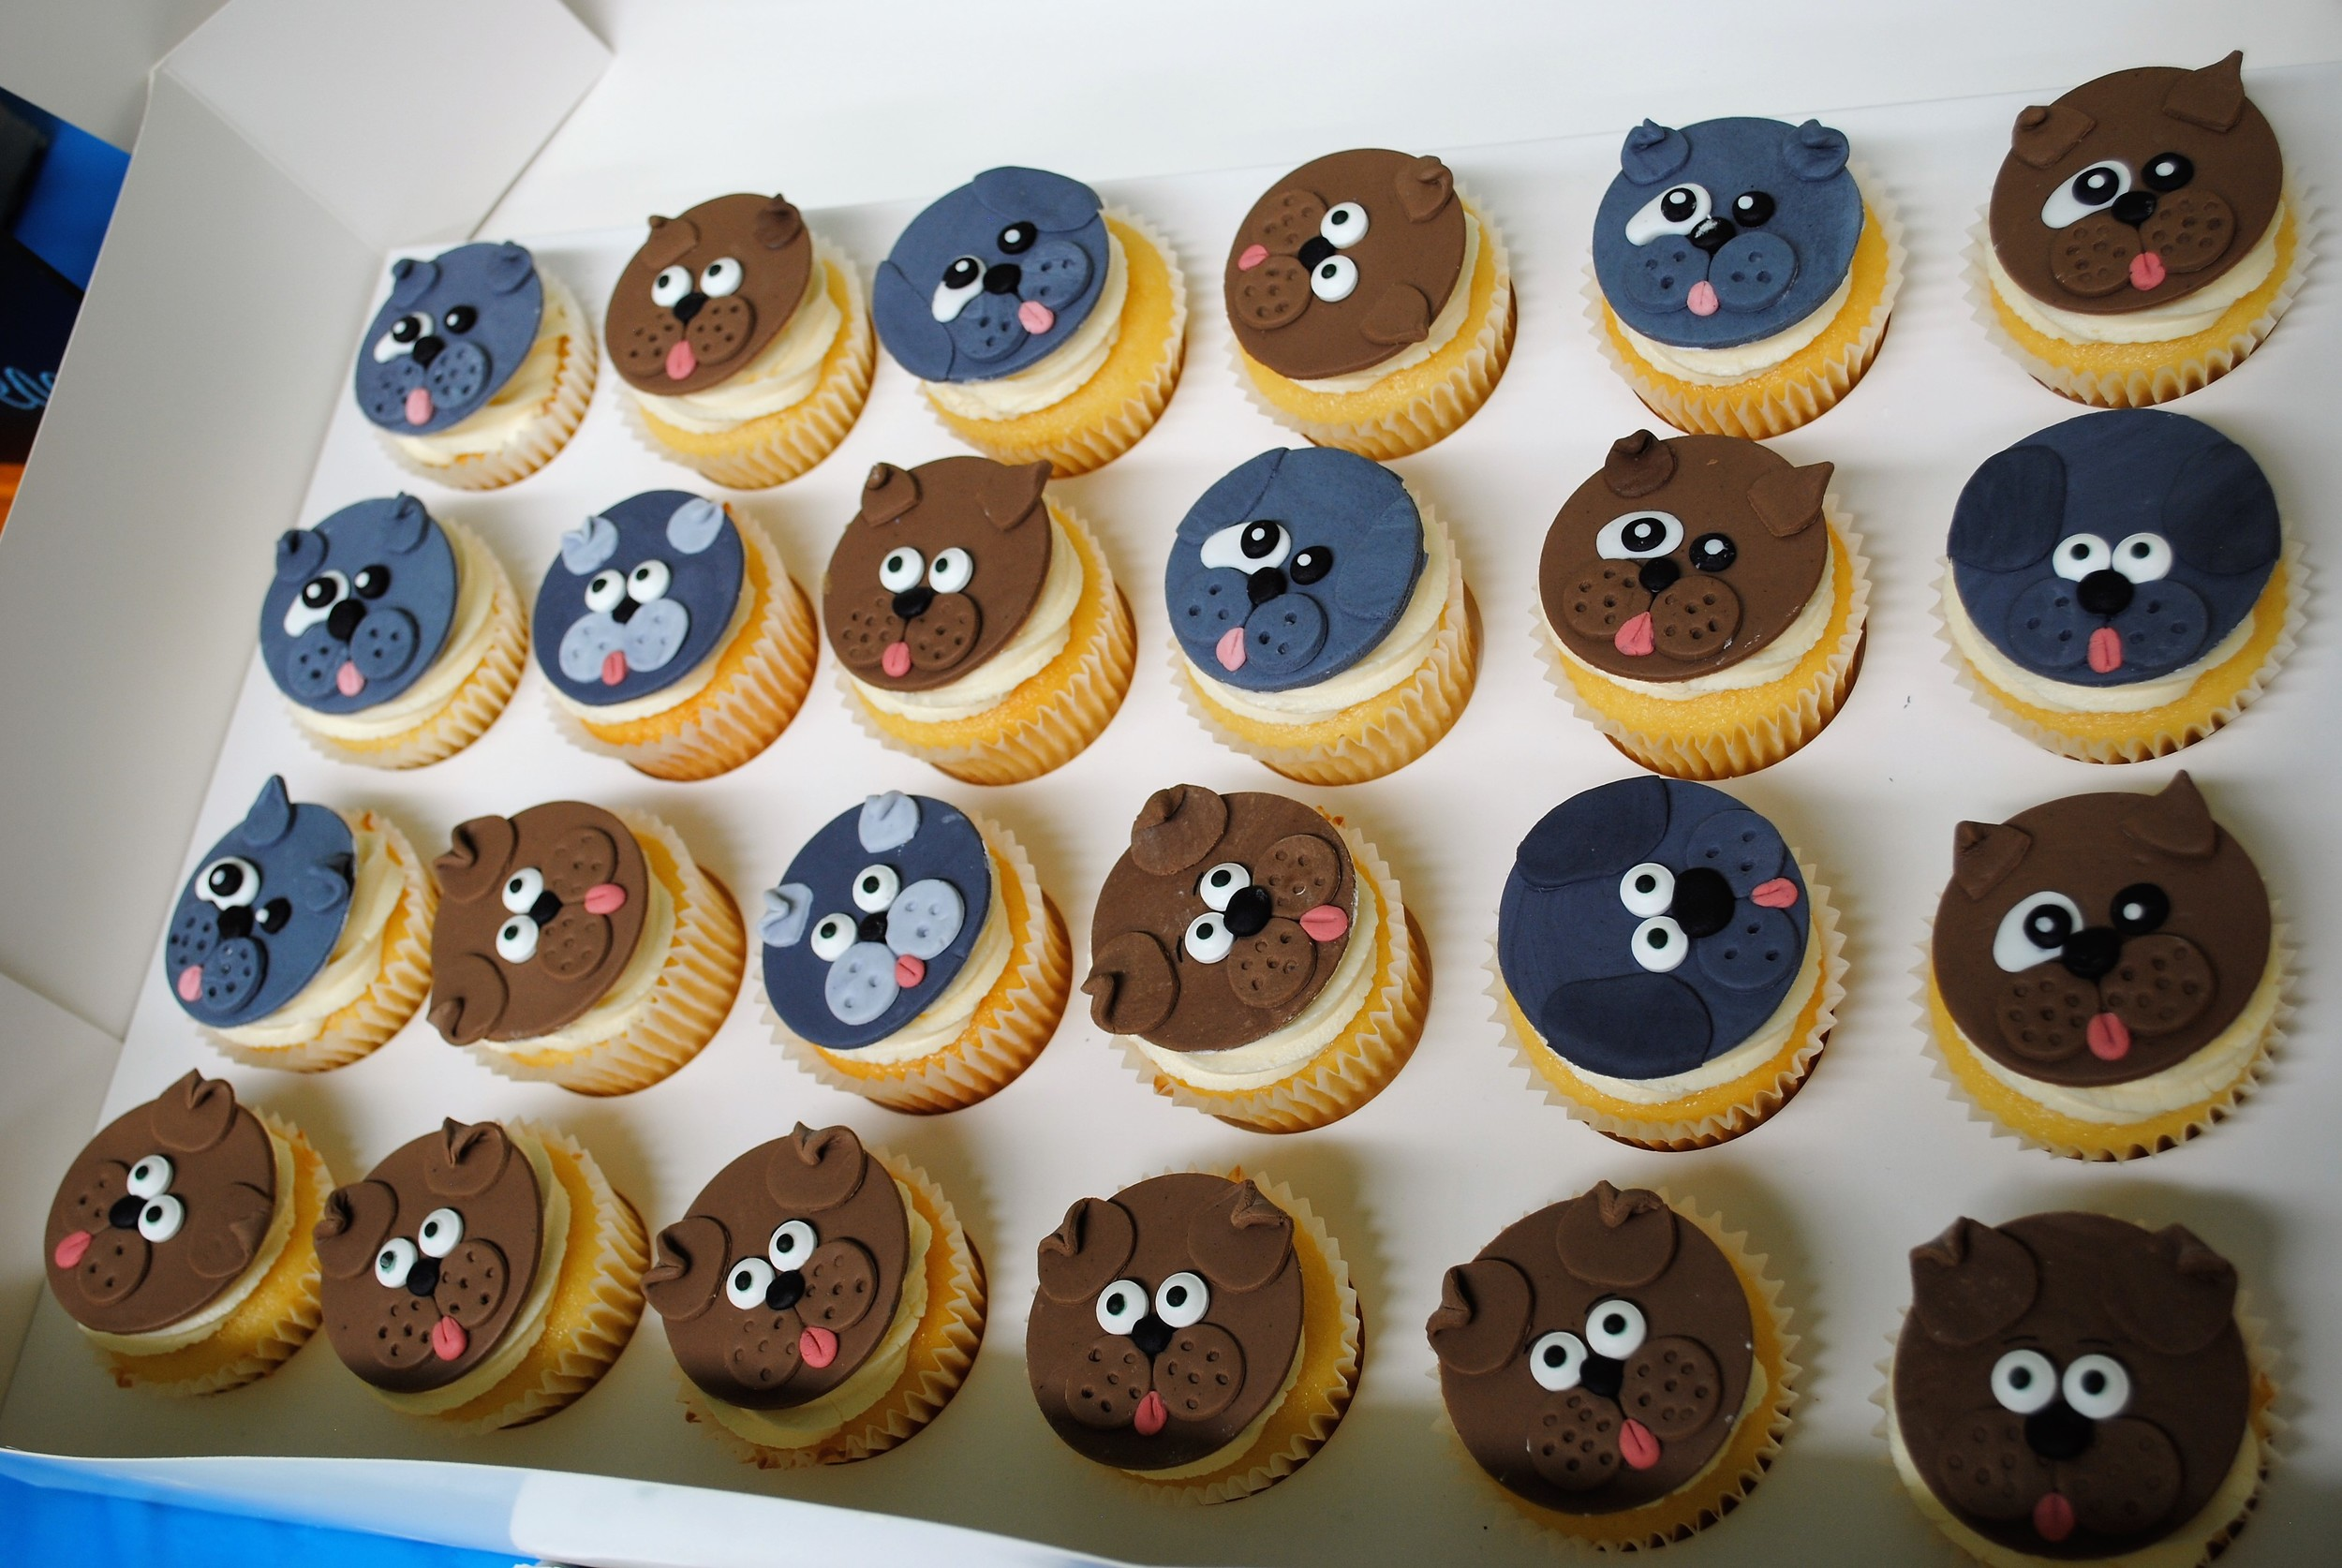 Puppy cupcakes for the guests, but the puppies had thier own pupcakes to eat!